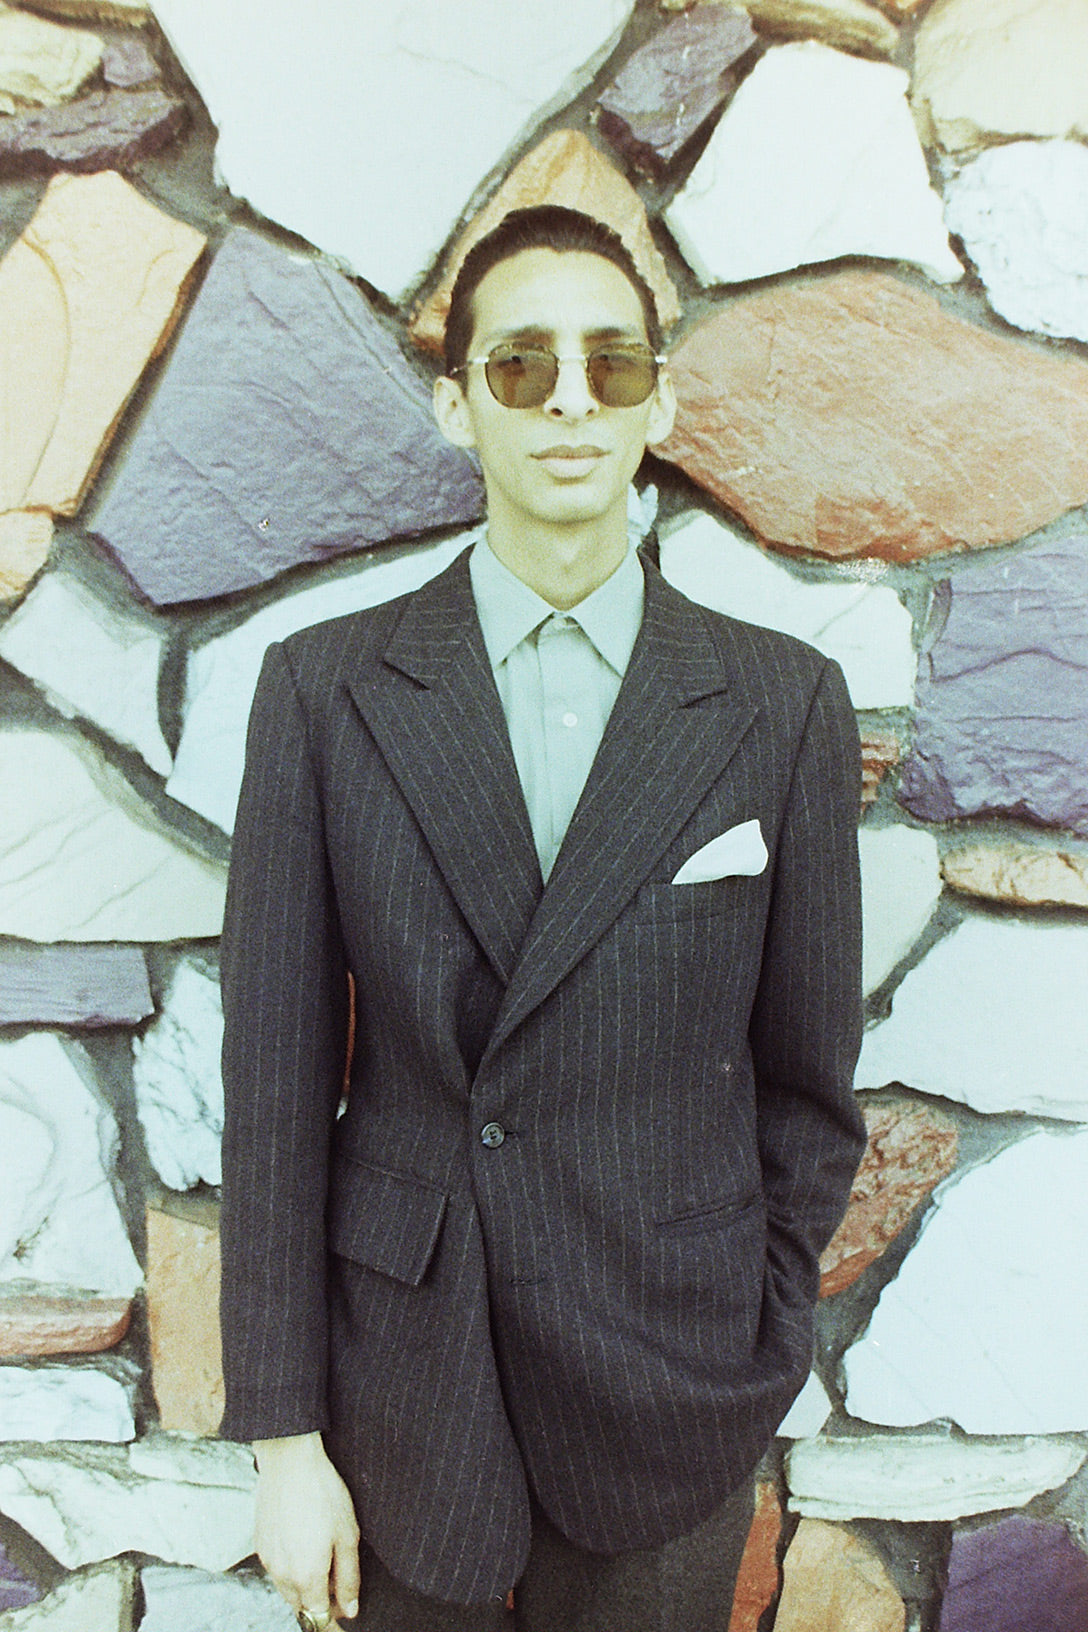 Man in tailored suit wearing GLCO sunglasses